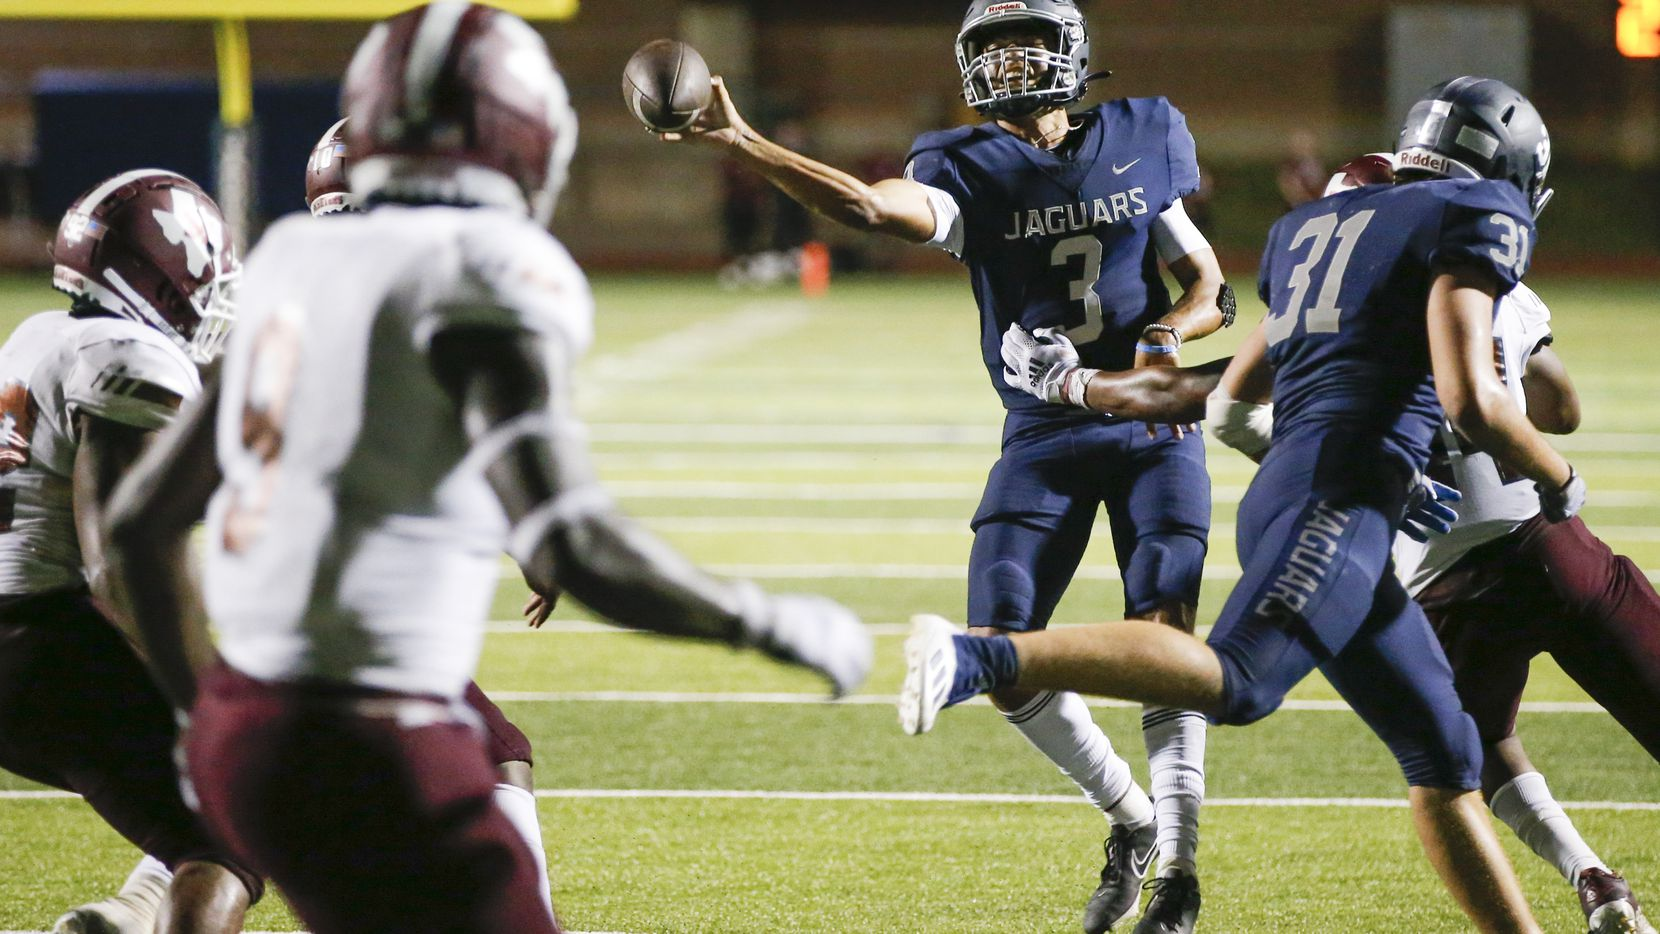 Flower Mound senior quarterback Nick Evers (3) throws during the second half of a high school football game against Mesquite at Flower Mound High School, Friday, August 27, 2021.